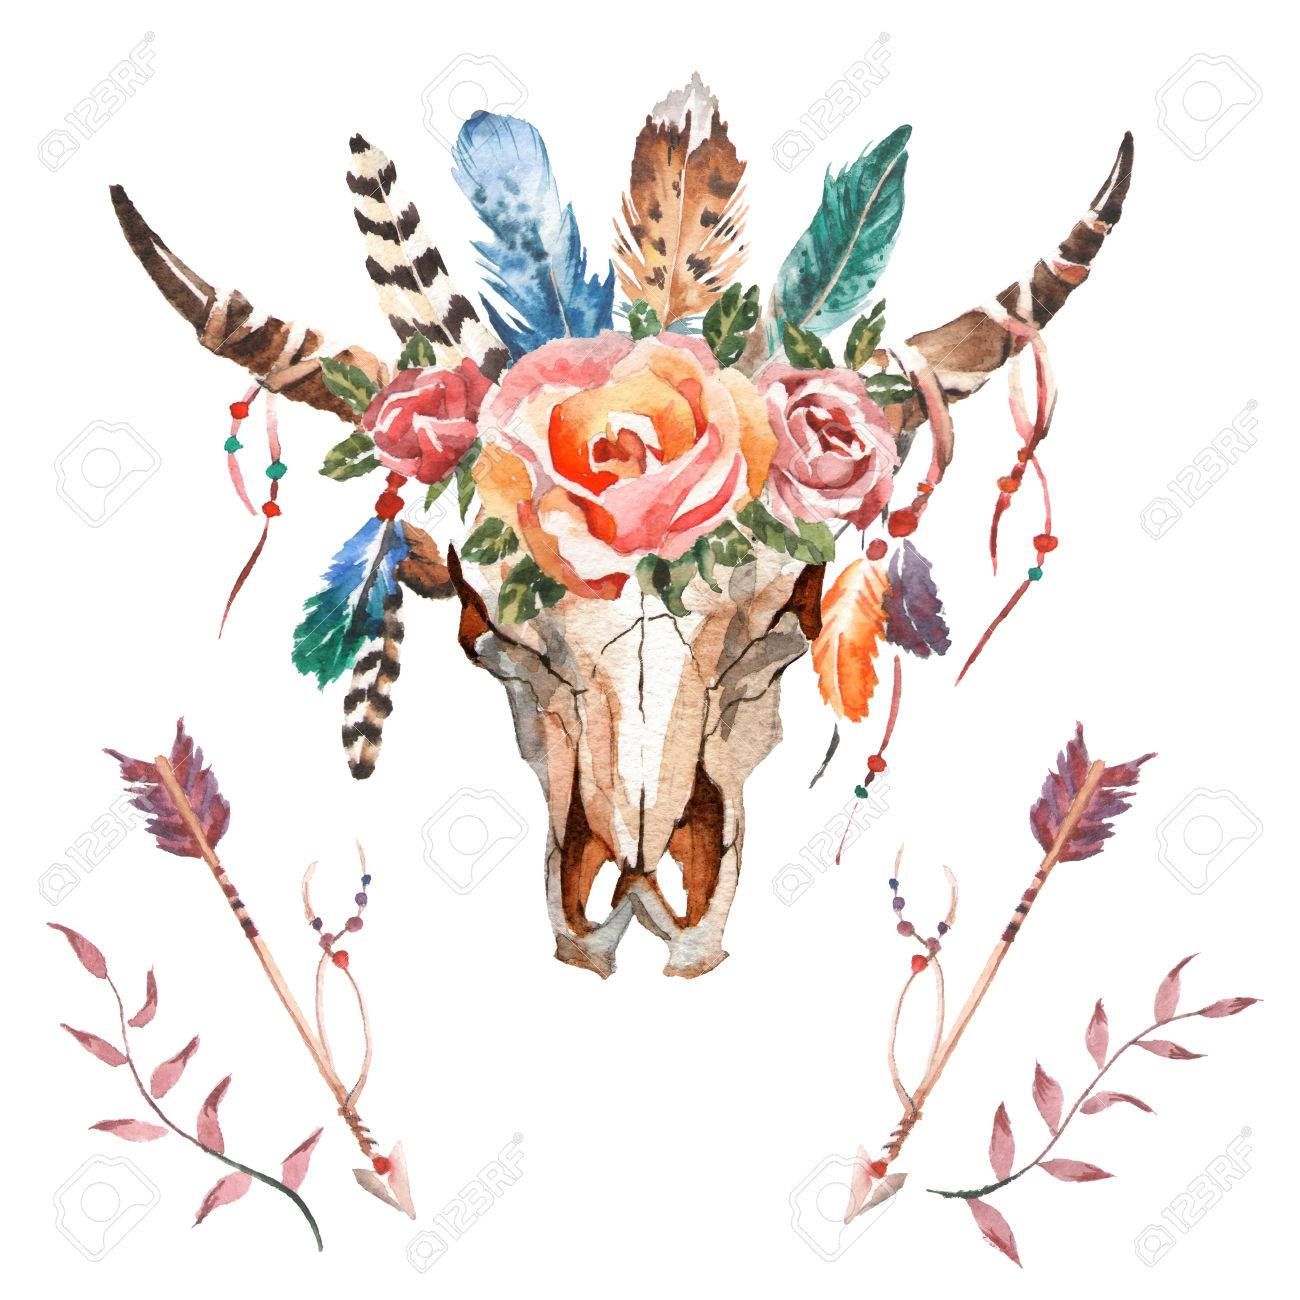 Watercolor isolated bull's head with flowers and feathers on white background. Boho style. Skull for wrapping, wallpaper, t-shirts, textile, posters, cards, prints Hand drawn image - 67915013